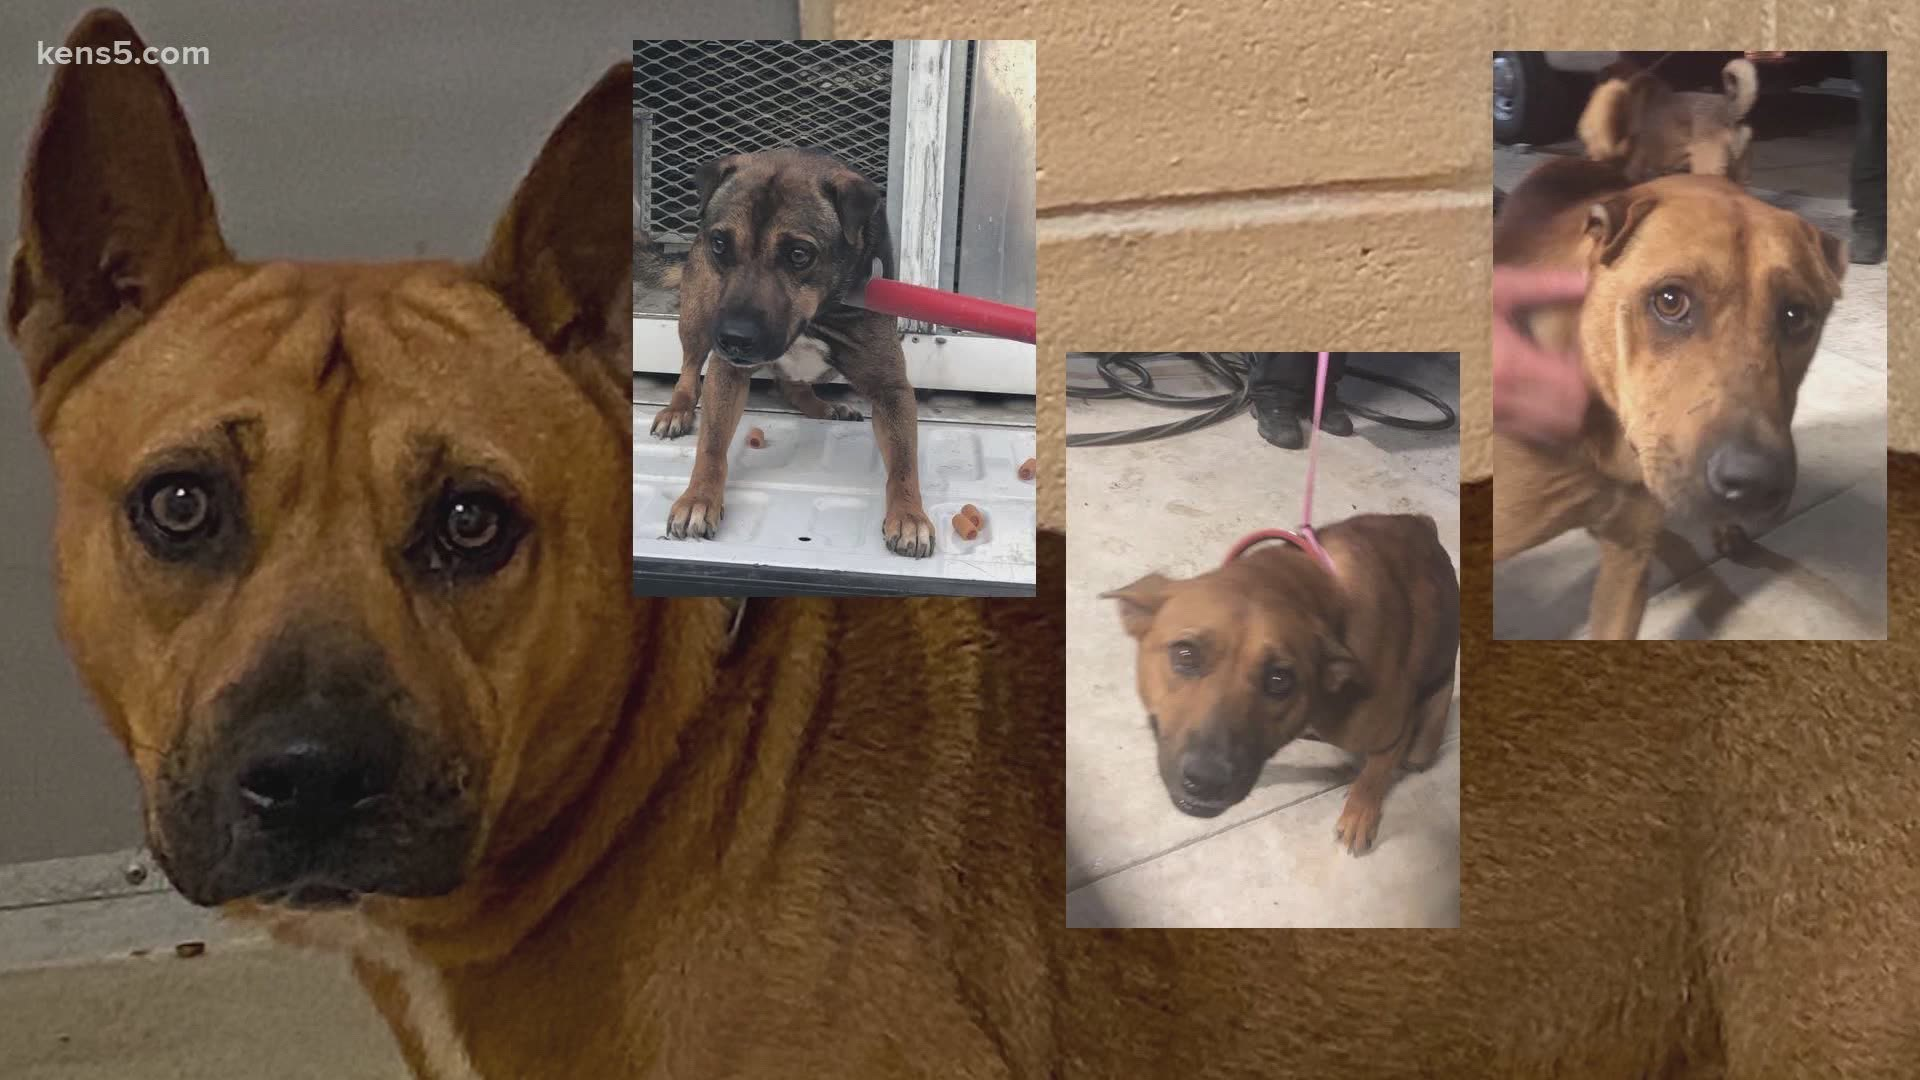 This Is Pretty Much As Bad As It Gets 23 Shar Pei Mixes Put New Braunfels Animal Shelter At Capacity Kens5 Com